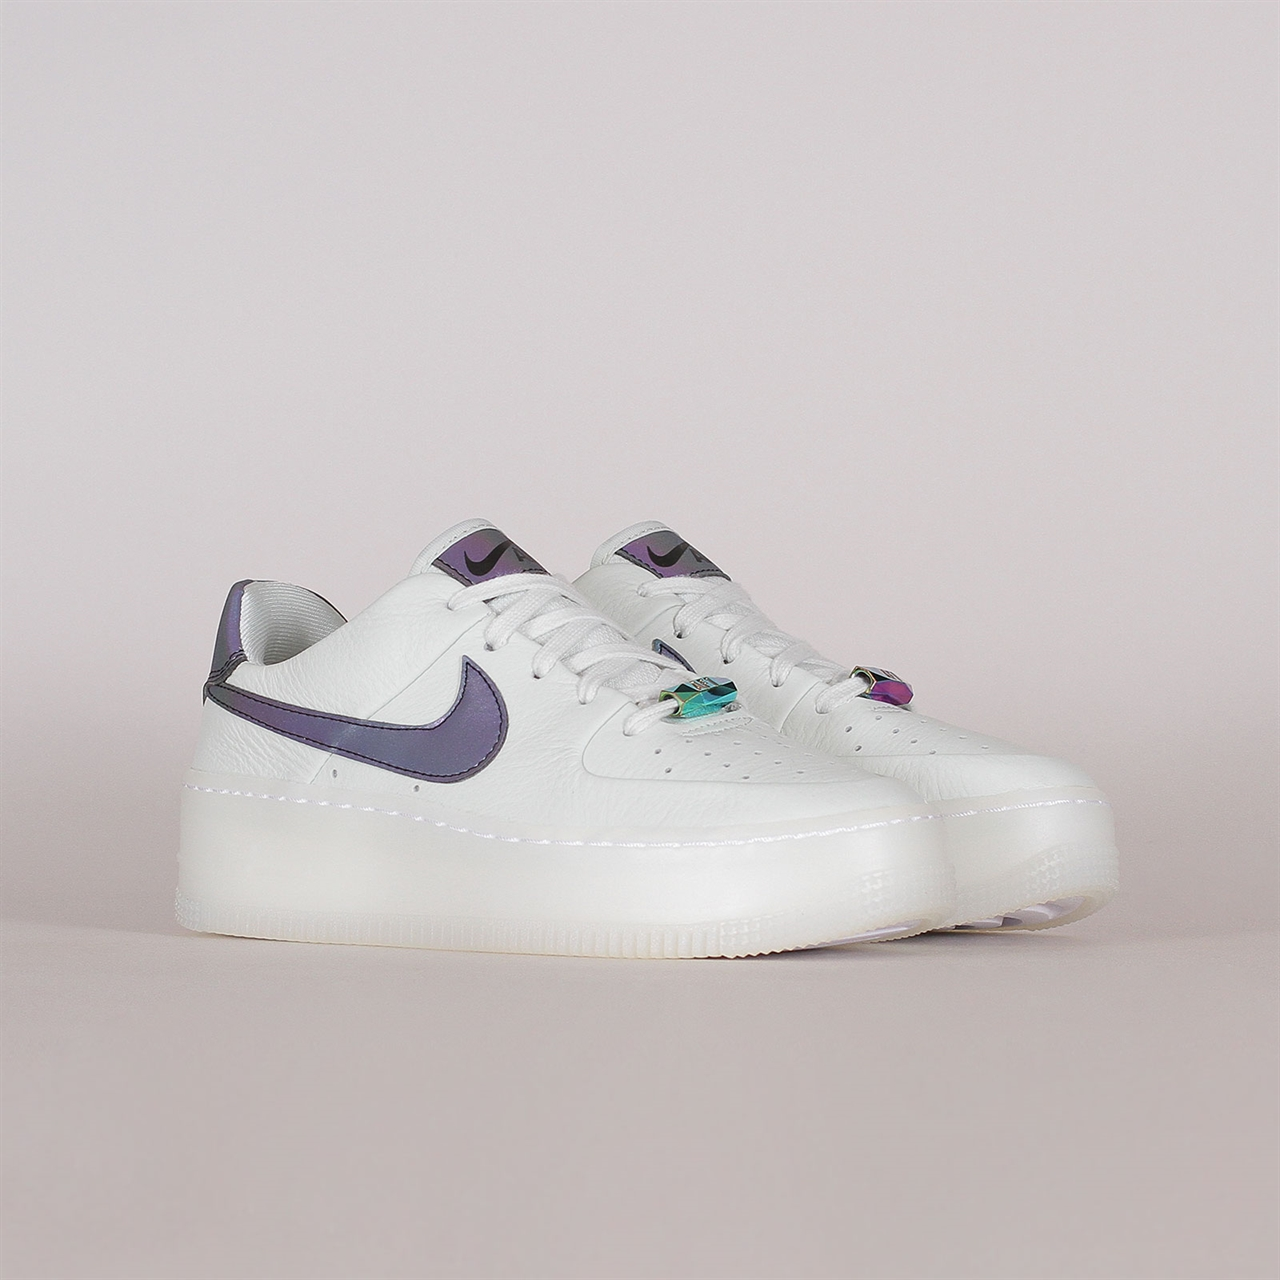 Shelta Nike Womens Air Force 1 Sage Low LX (AR5409 003)